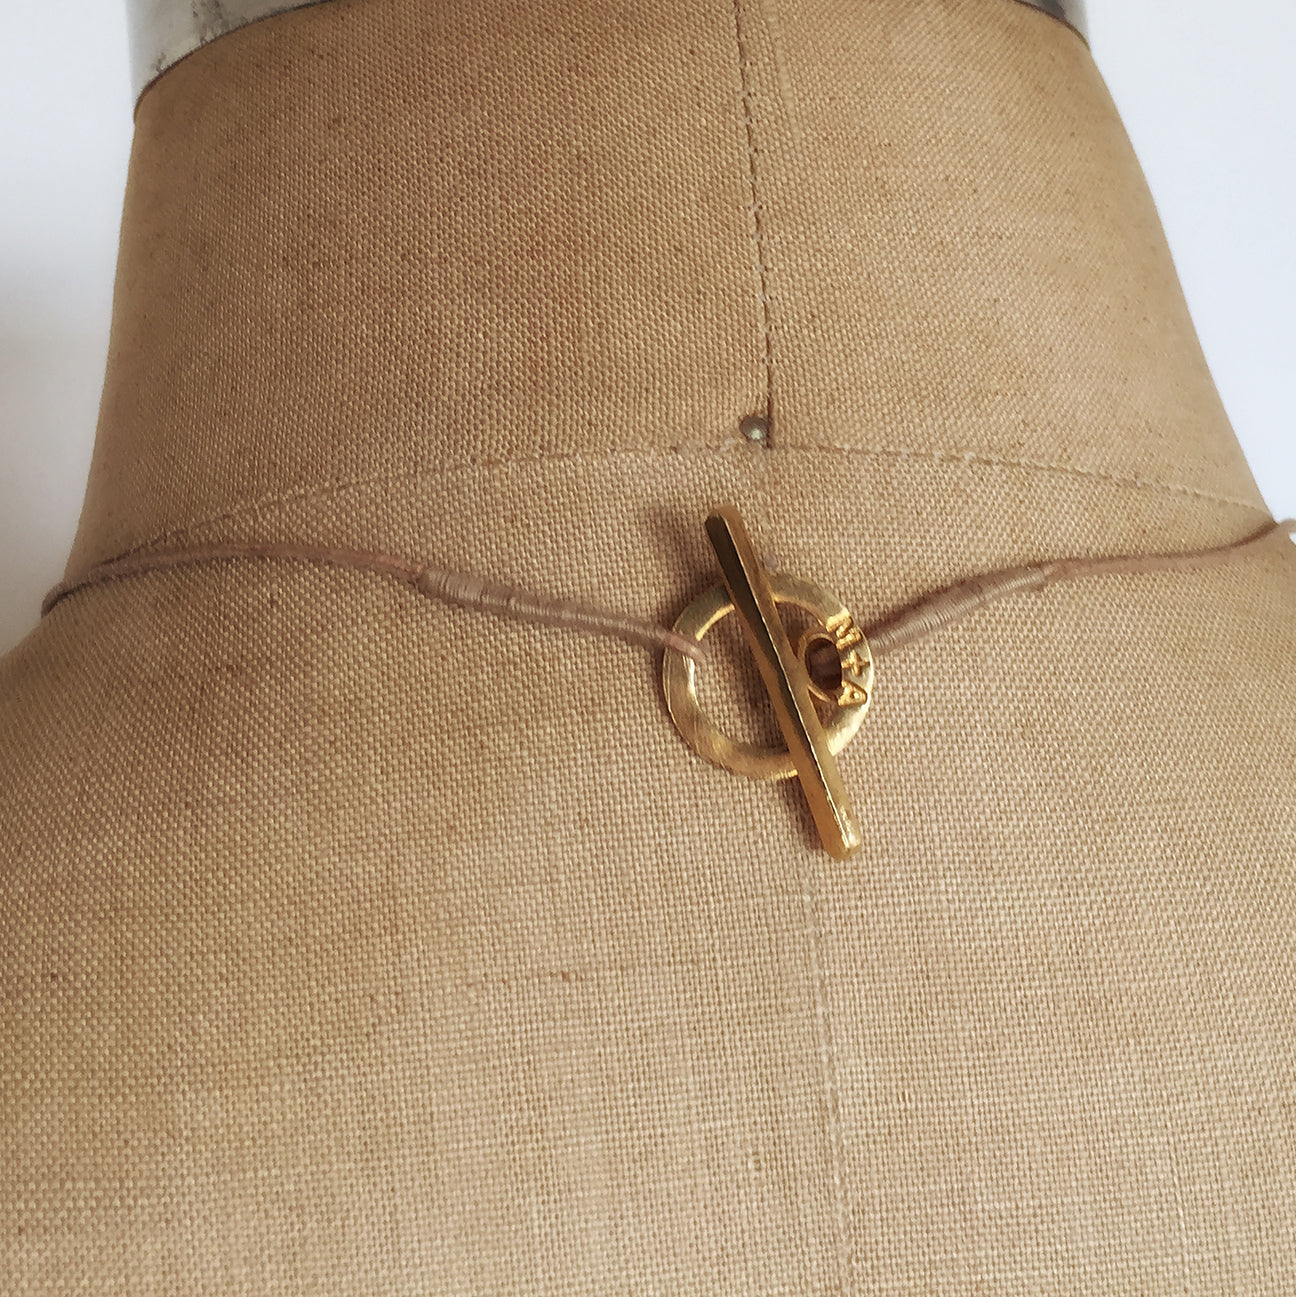 M+A NYC Horse Hair Geometry Necklace - Clasp Detail